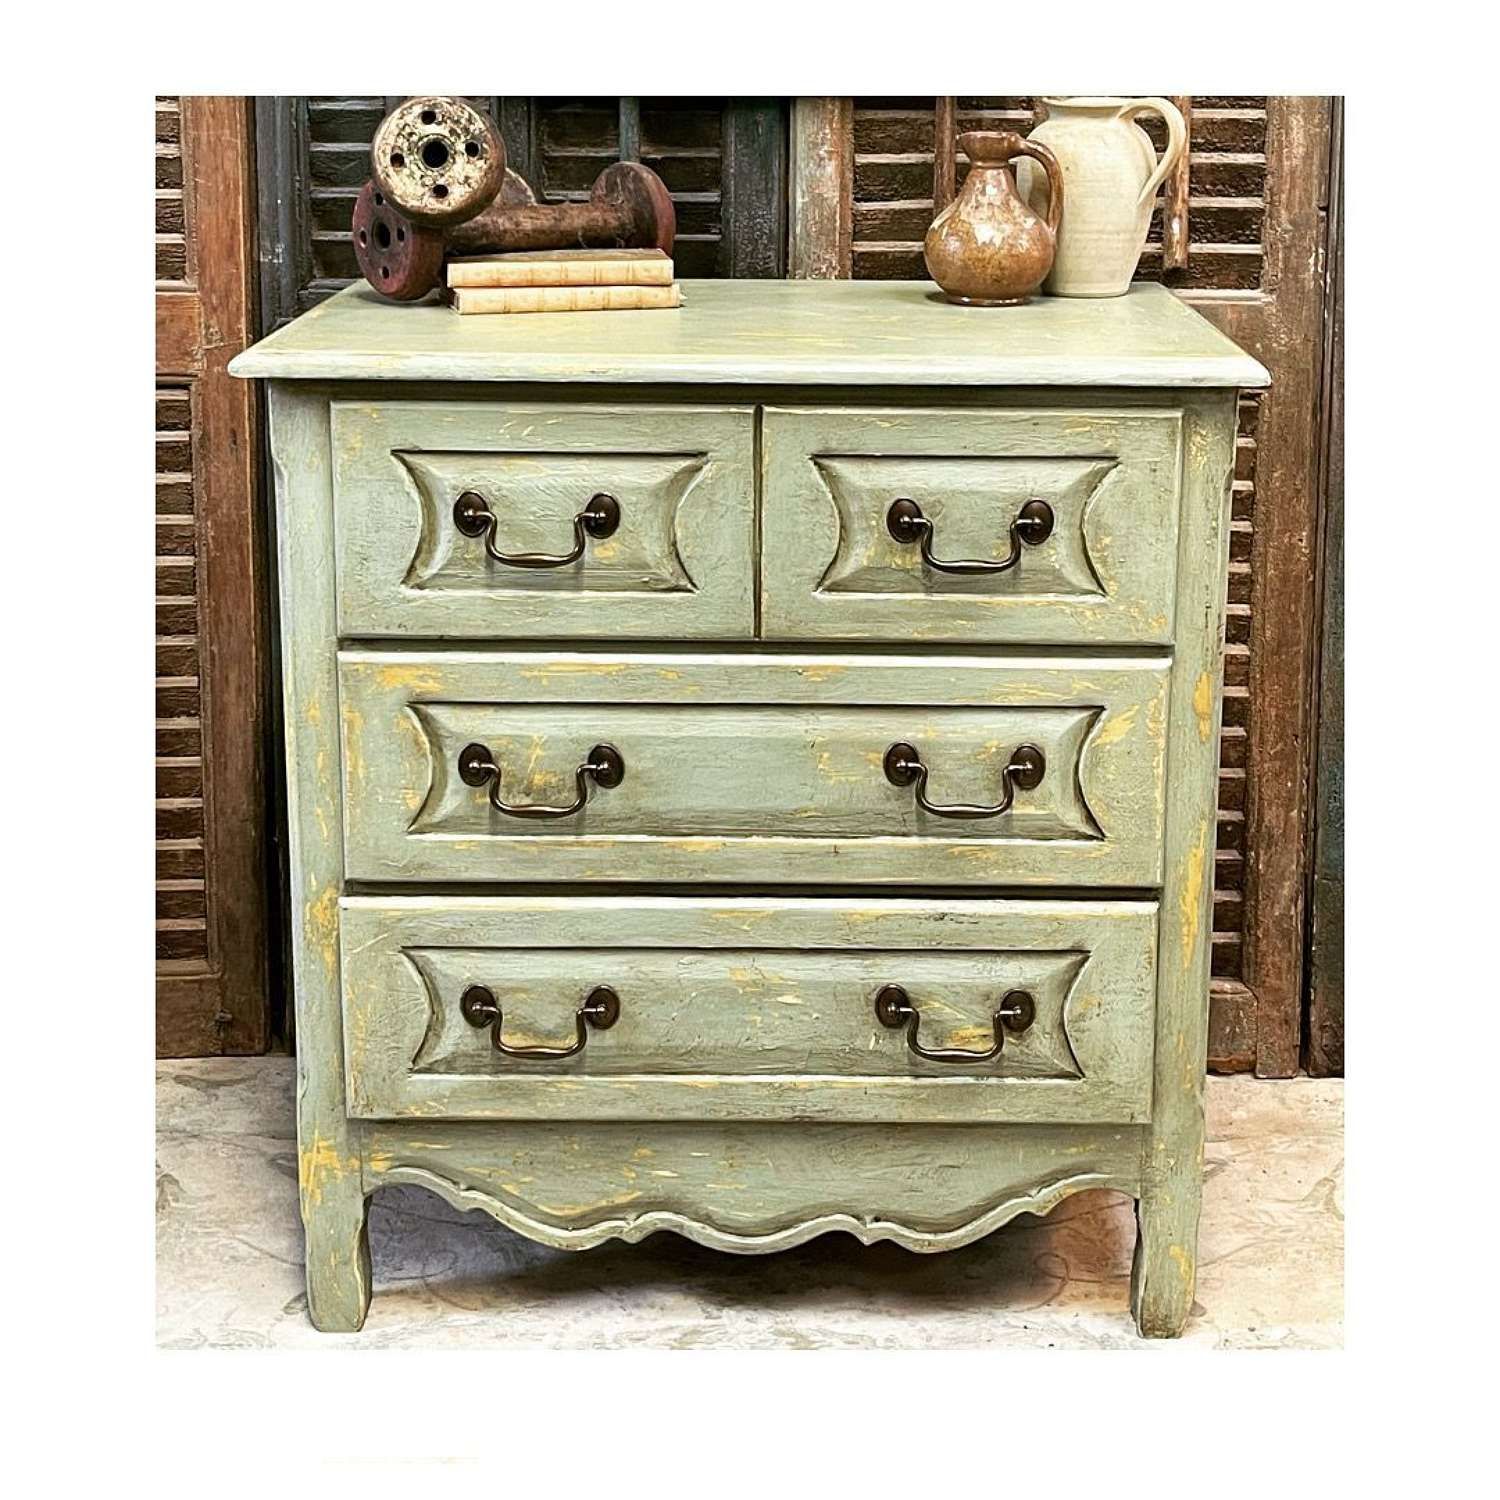 Small French country style chest of drawers